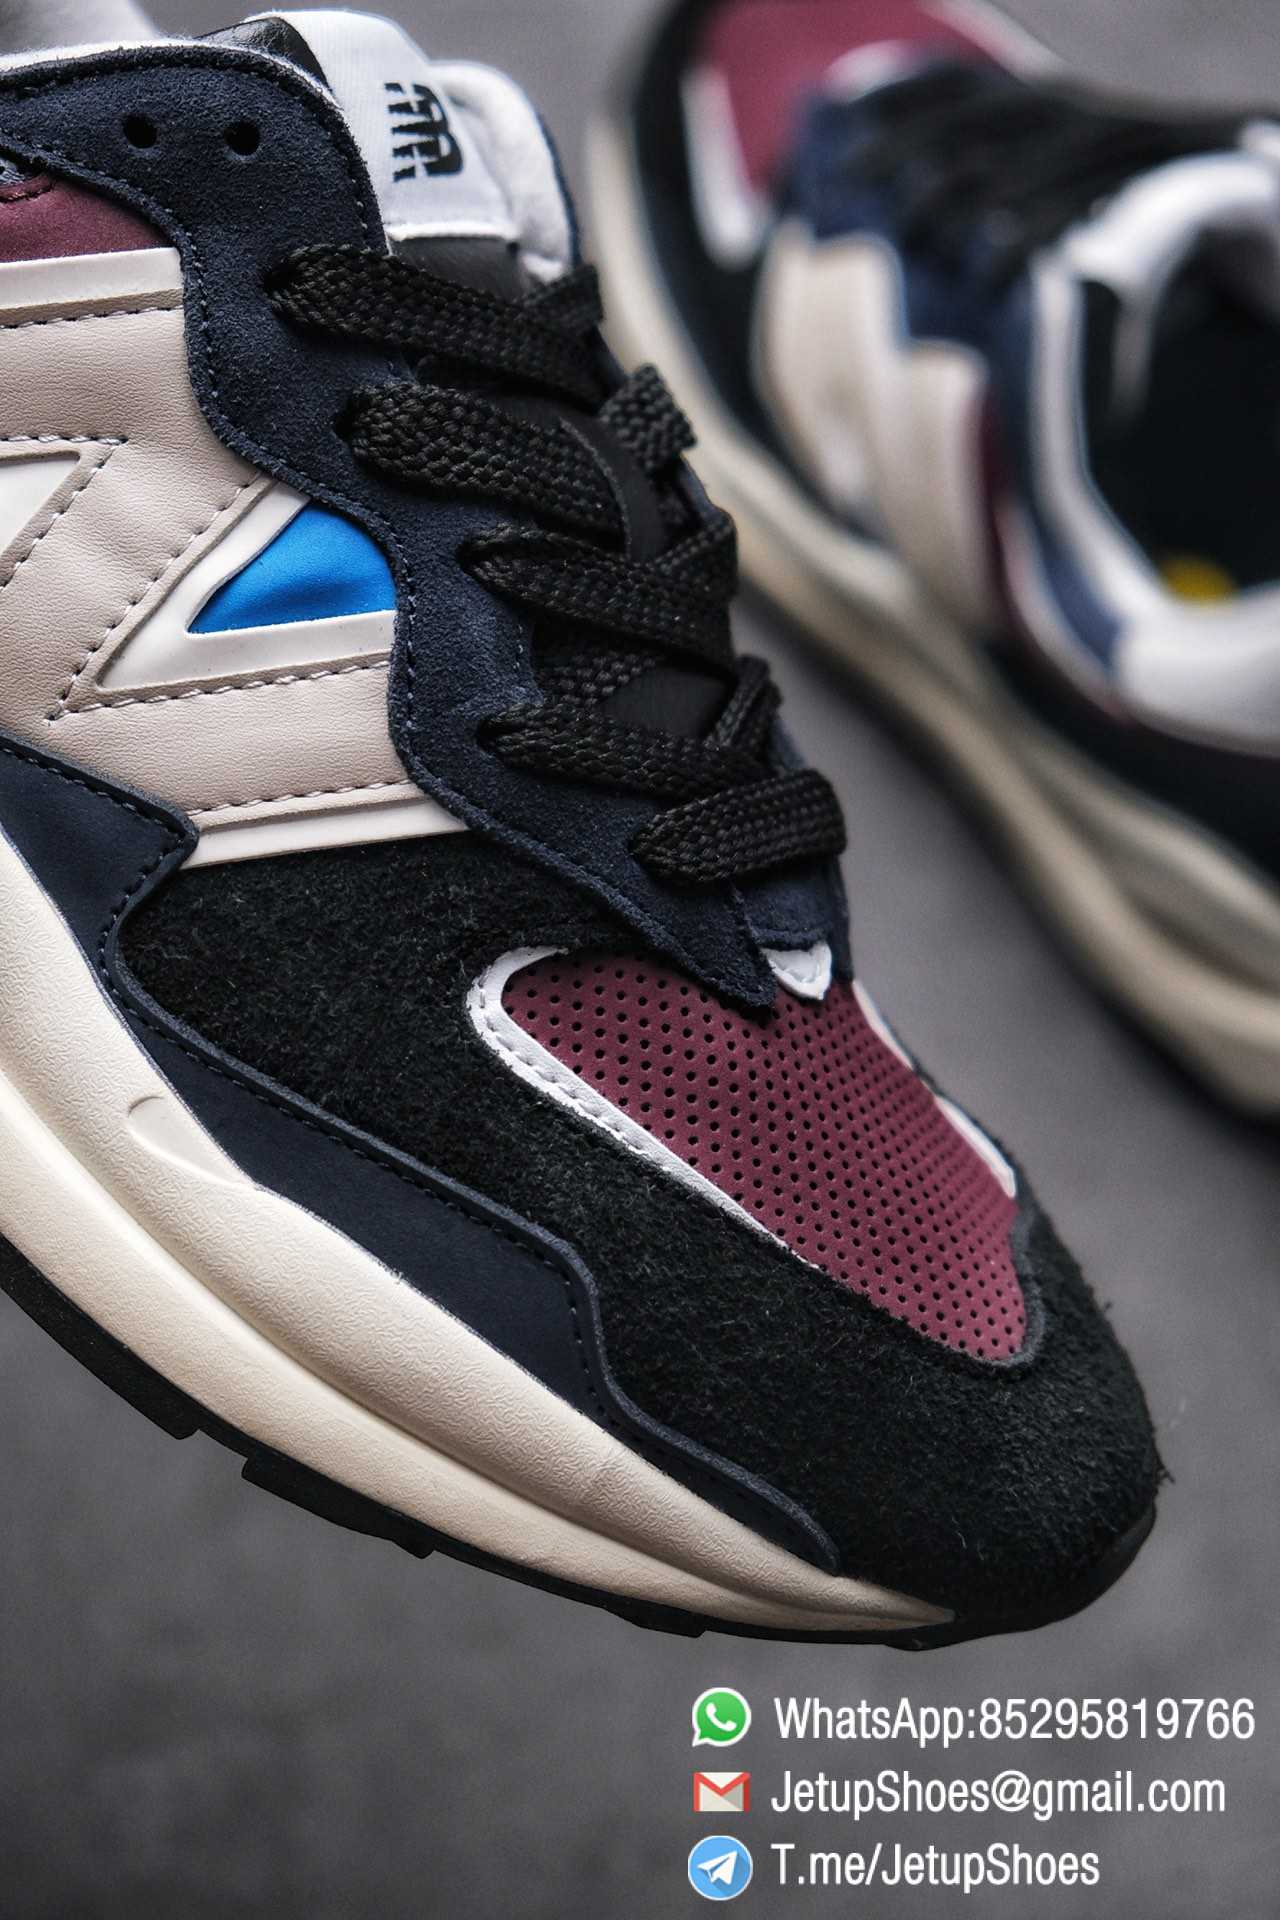 Best Replica New Balance 57 40 Navy Burgundy SKU M5740TB Navy And Burgundy Panels Appear Top Quality 06